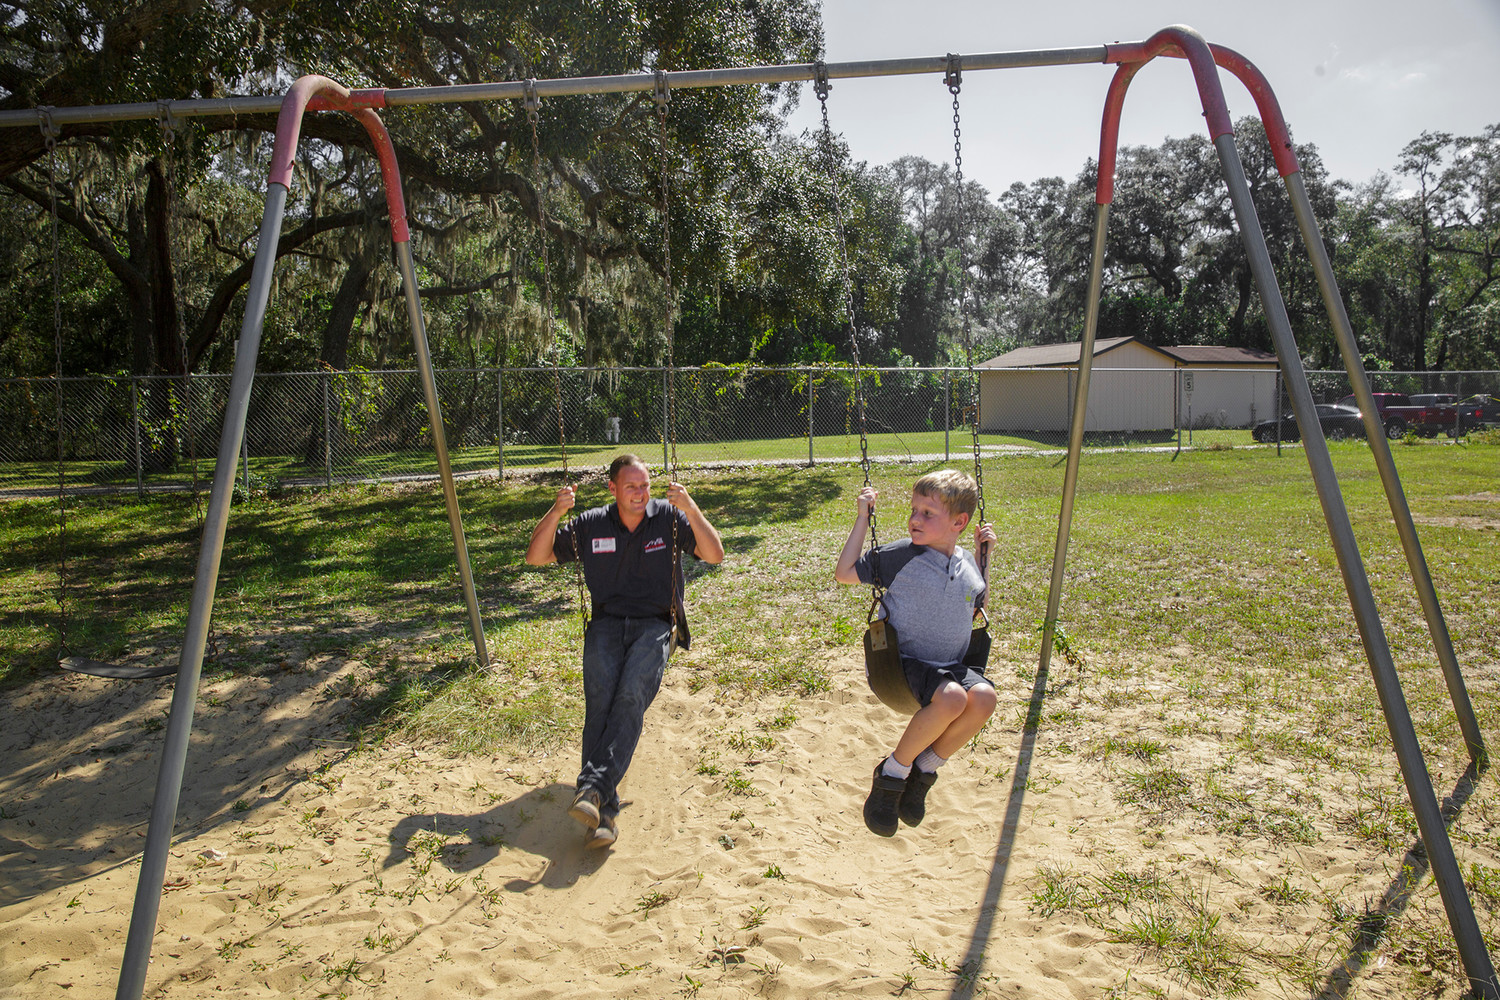 Jake Boyles, left, and his son Jacob see who can swing higher last week at Middleburg Elementary when dads were encouraged to come spend lunch with their students as part of a national campaign.